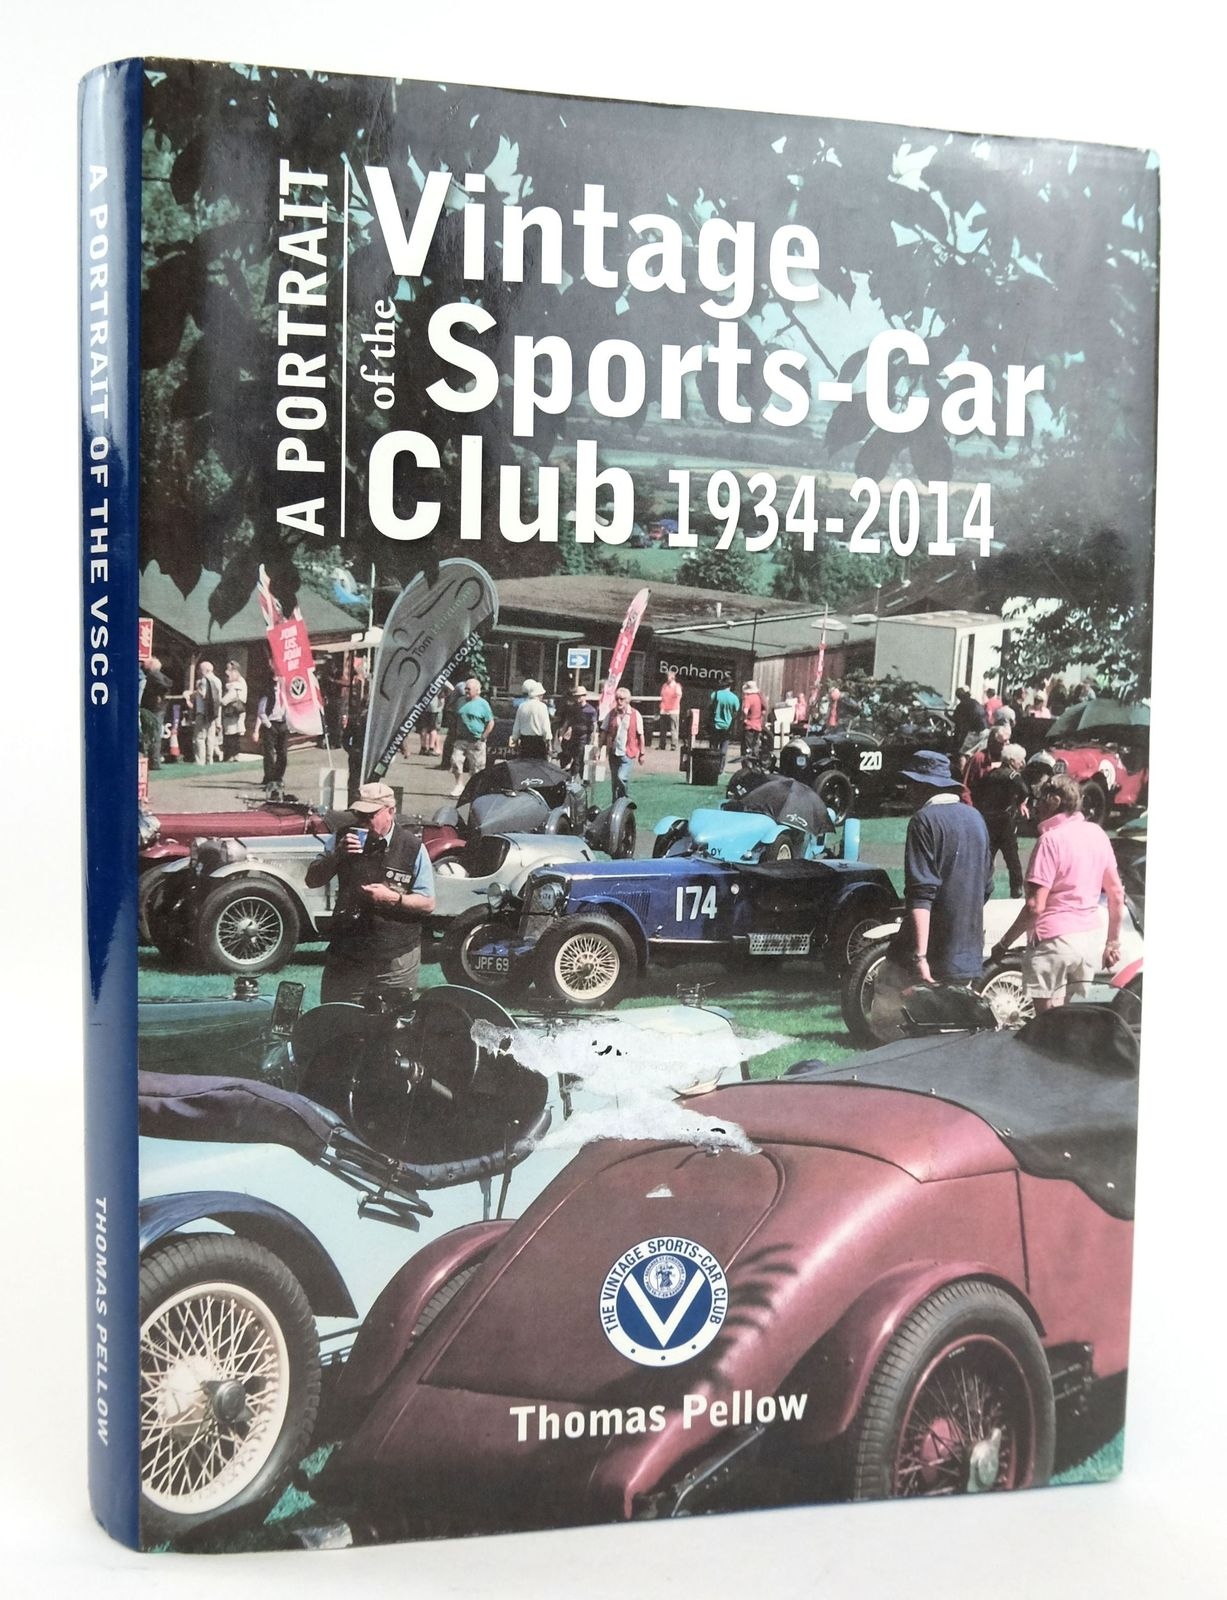 Photo of A PORTRAIT OF THE VINTAGE SPORTS-CAR CLUB 1934-2014 written by Pellow, Thomas published by Vintage Sports-Car Club Limited (STOCK CODE: 1820135)  for sale by Stella & Rose's Books